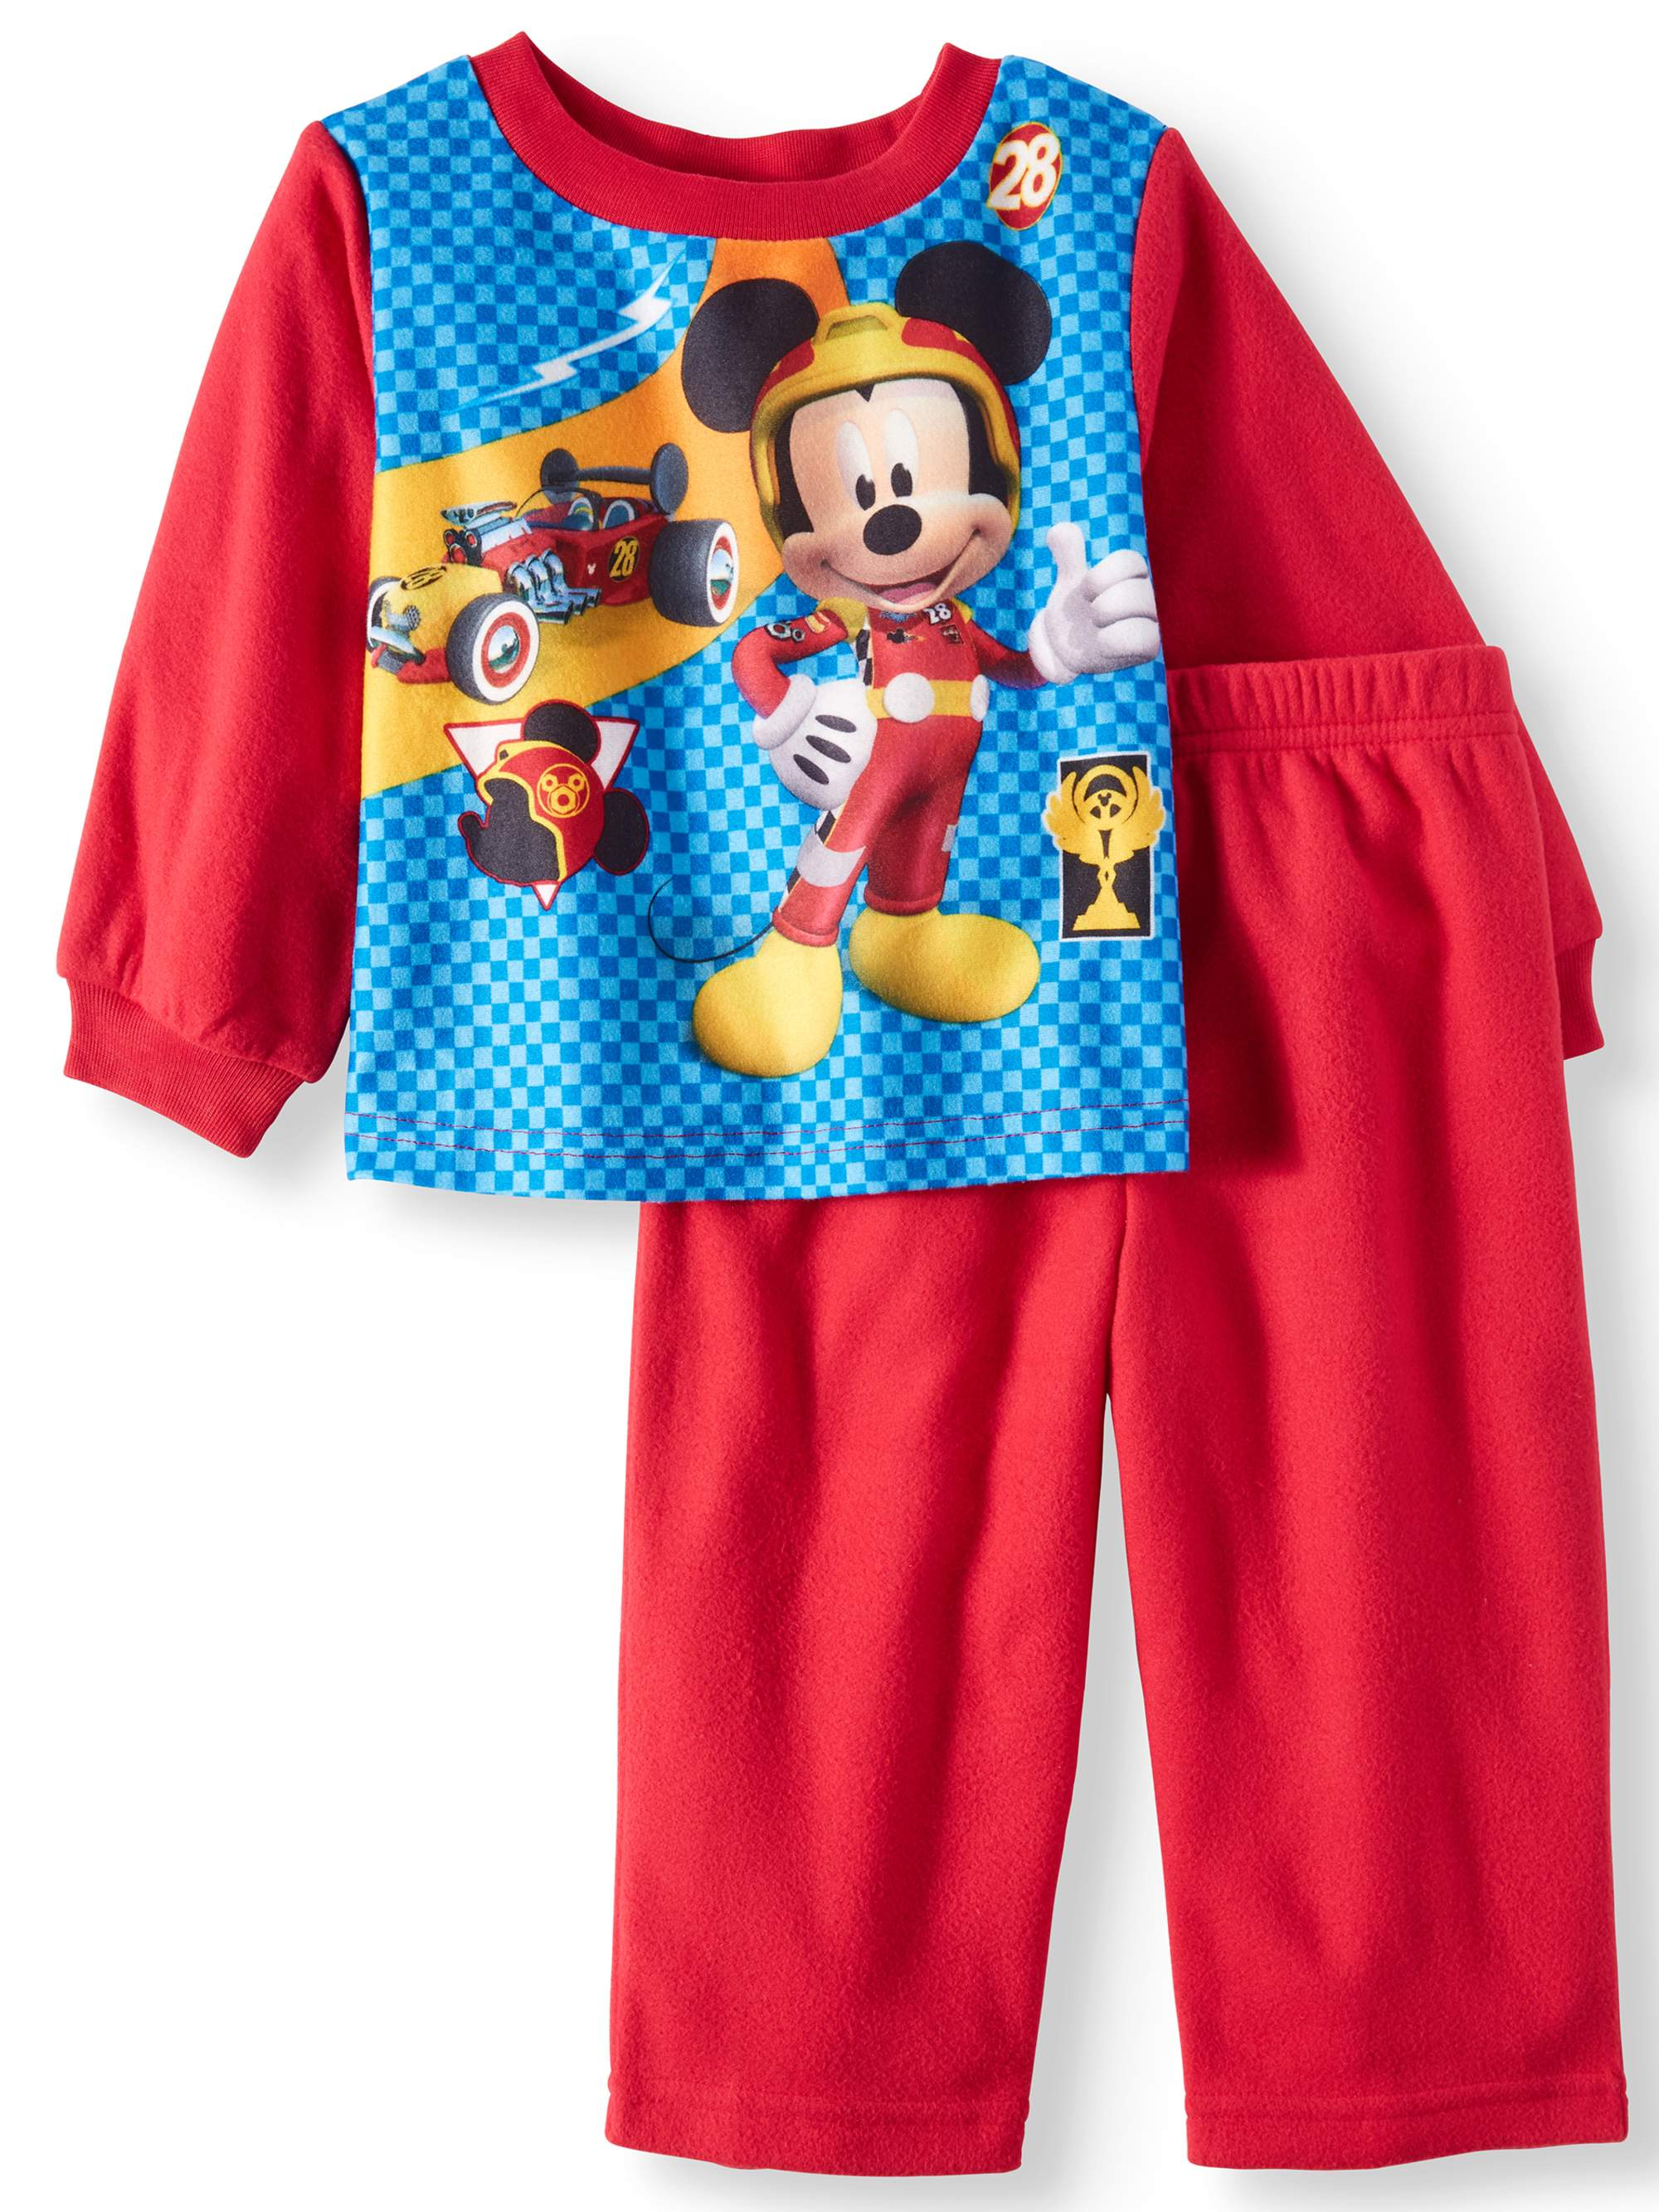 Mickey Mouse Pajamas, 2pc Set (Toddler Boys)